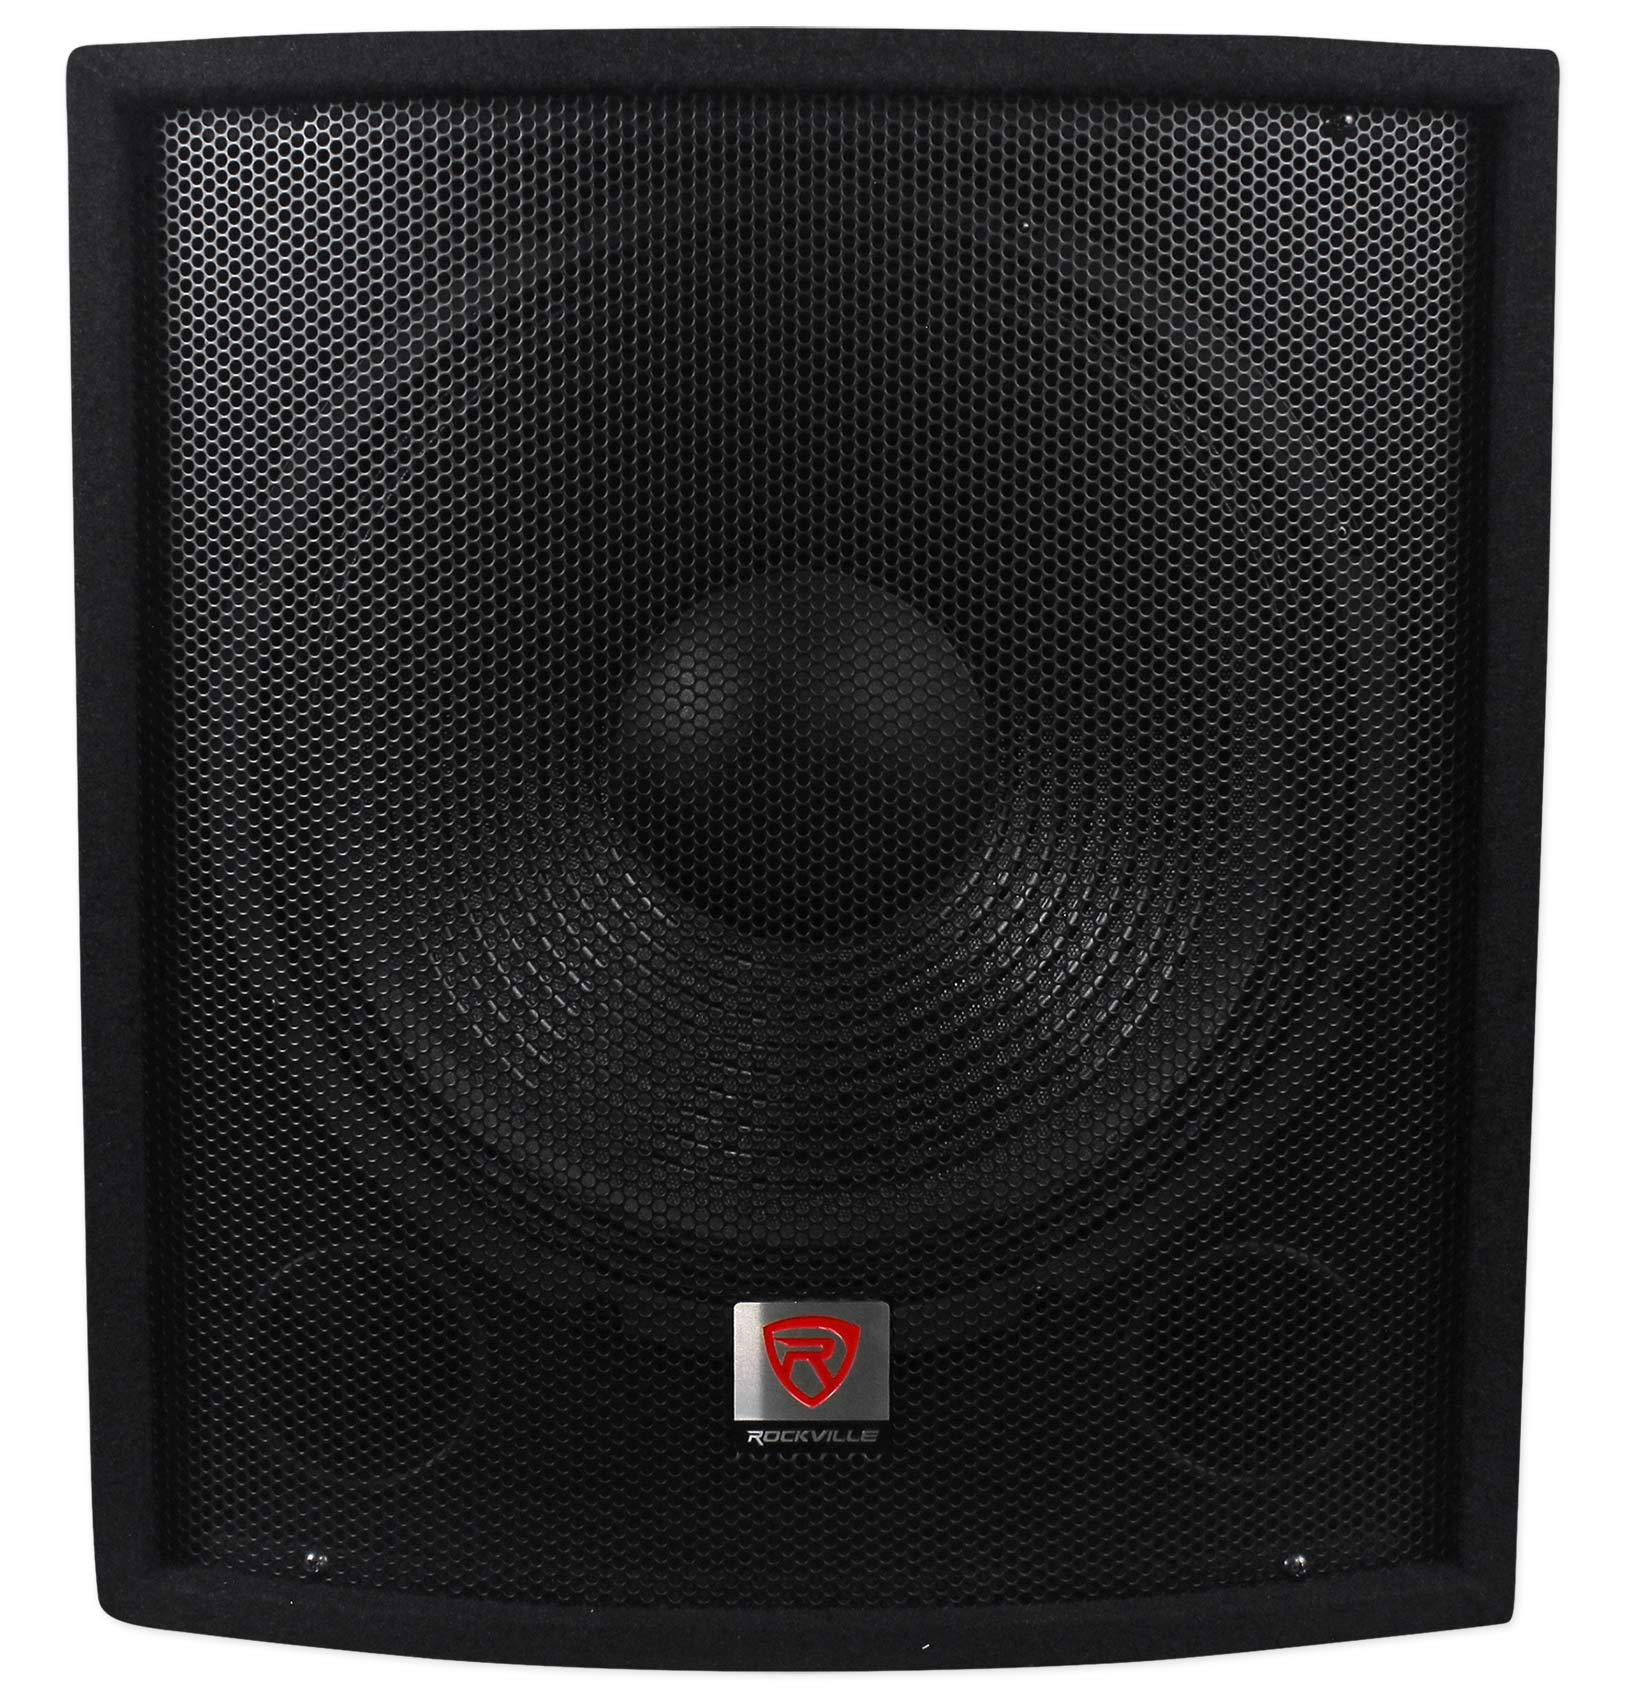 Rockville SBG1158 15'' 800 Watt Subwoofer Sub For Church Sound Systems by Rockville